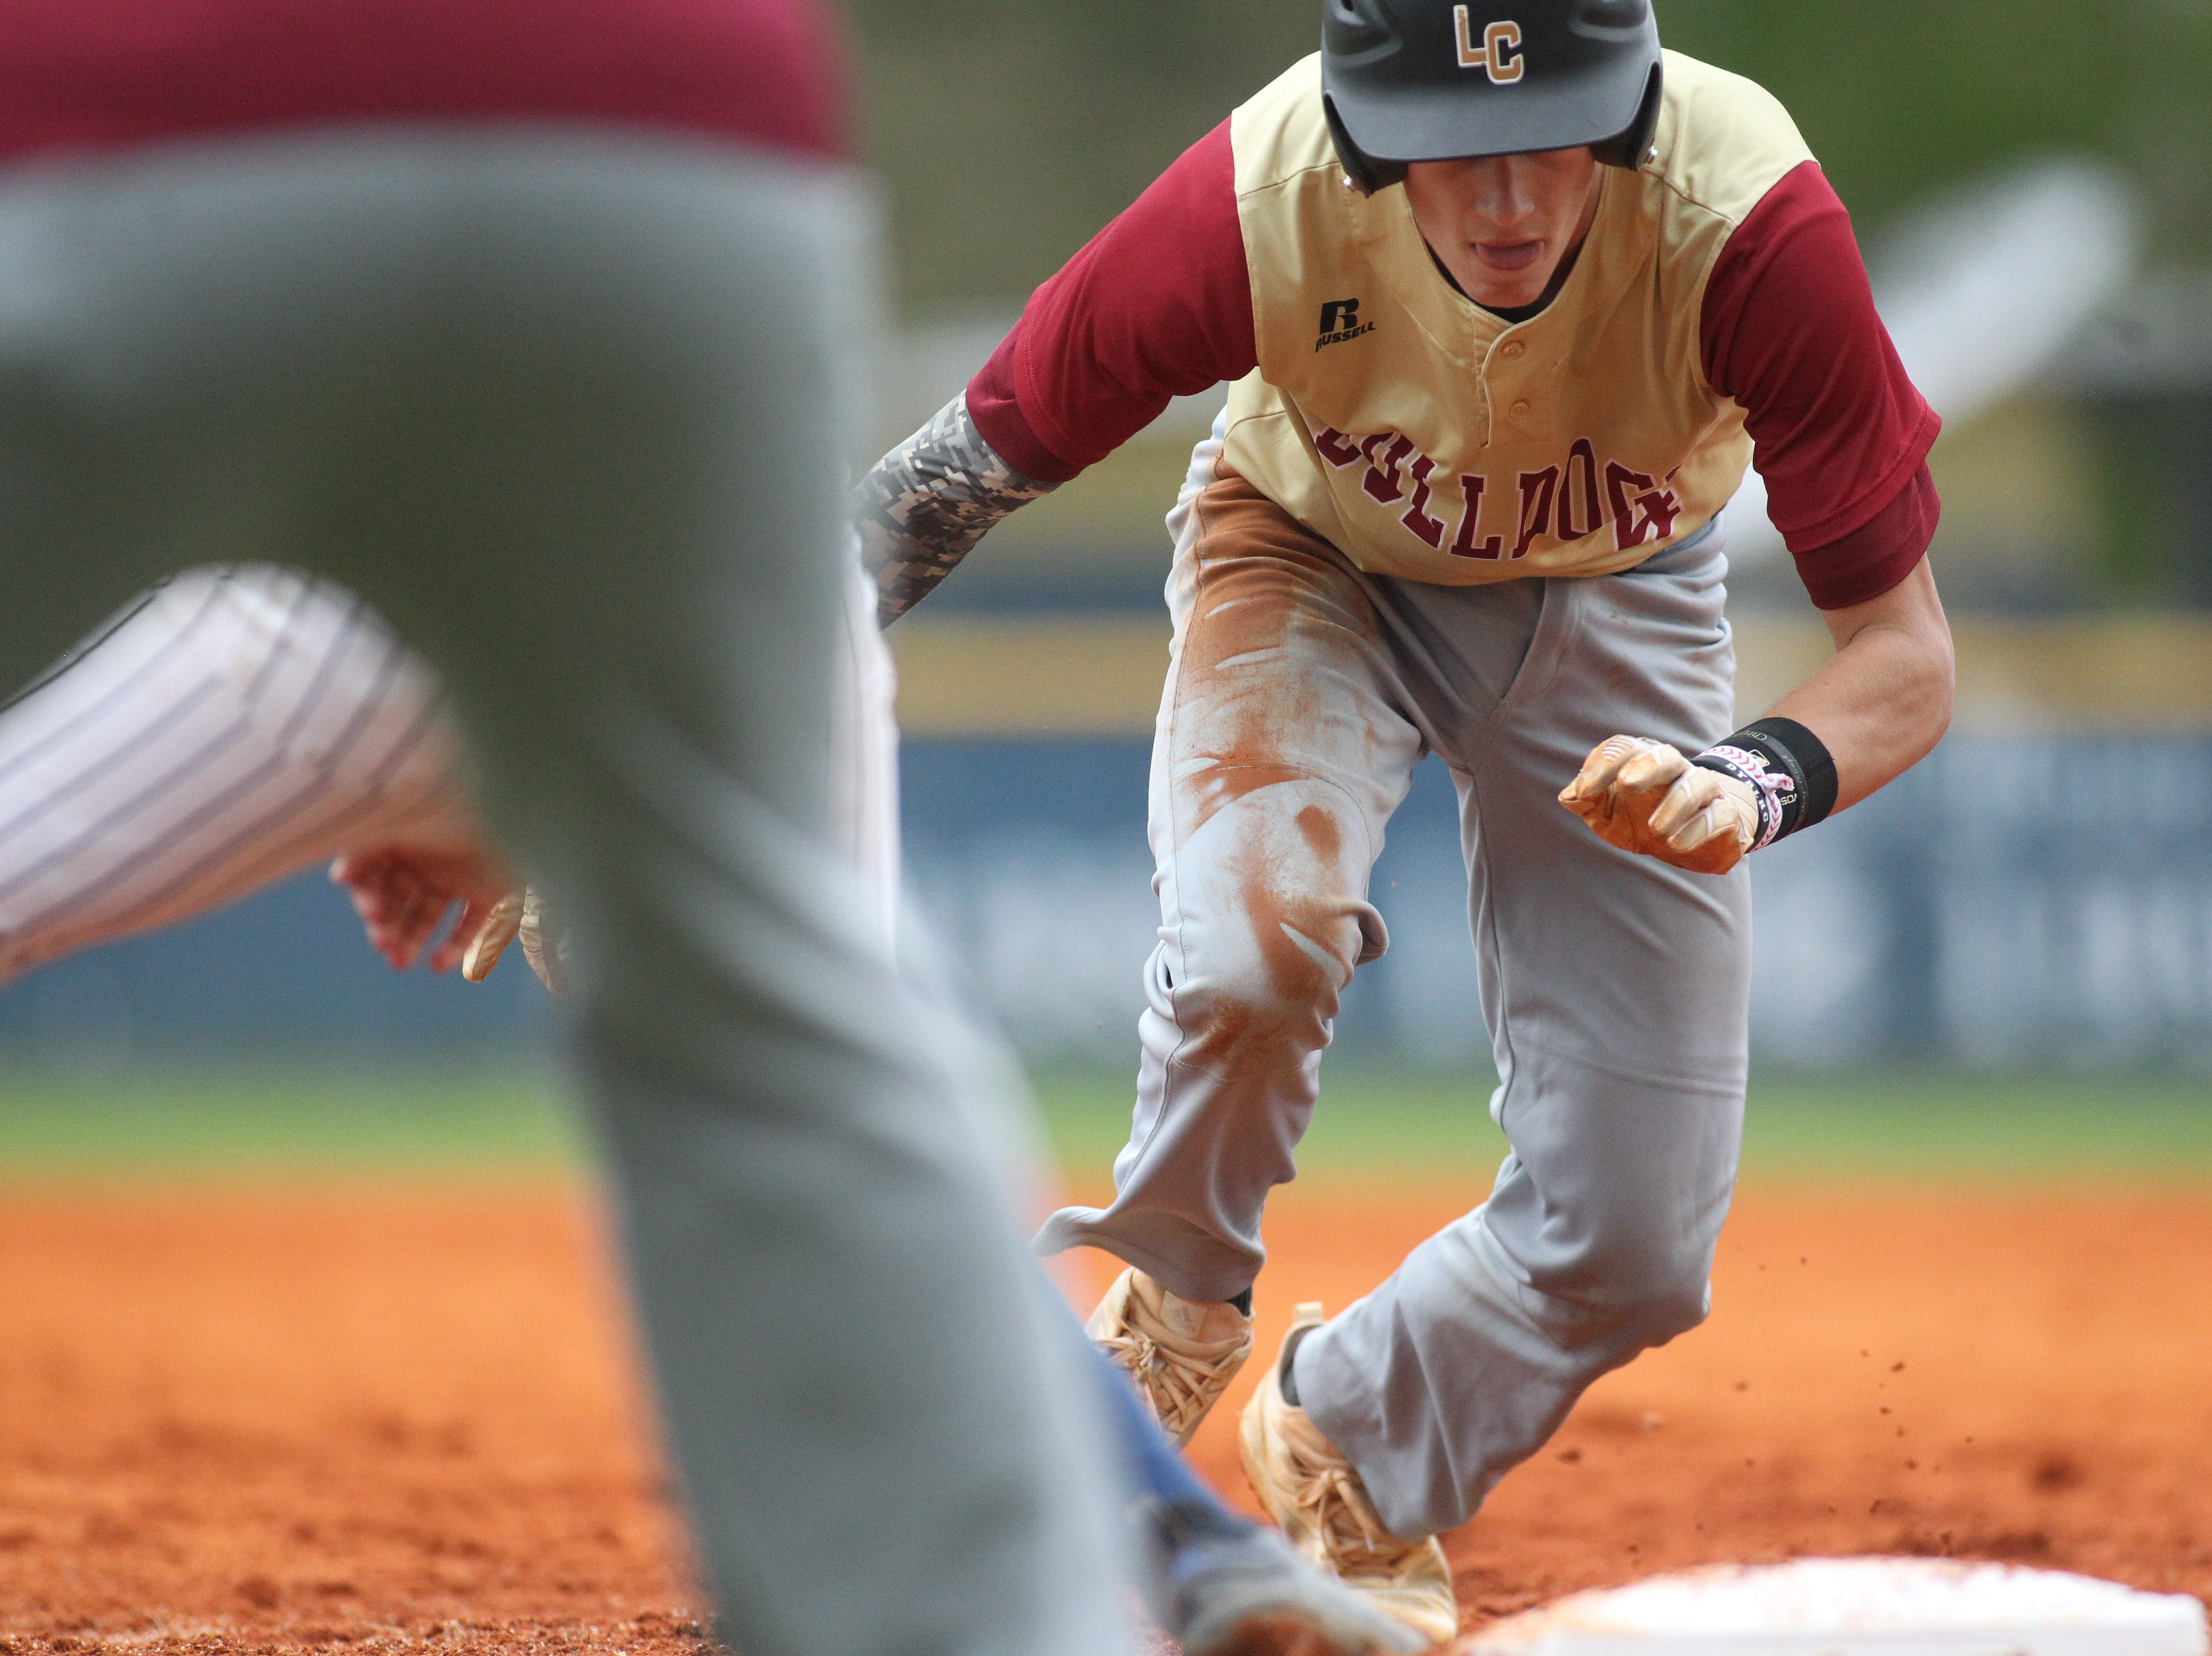 Liberty County's Austin Waller goes back to first on a pick-off attempt as Liberty County's baseball team went on the road to beat Maclay 8-2 on Saturday, March 16, 2019. The Bulldogs played their first game following their head coach Corey Crum's tragic death six days ago.